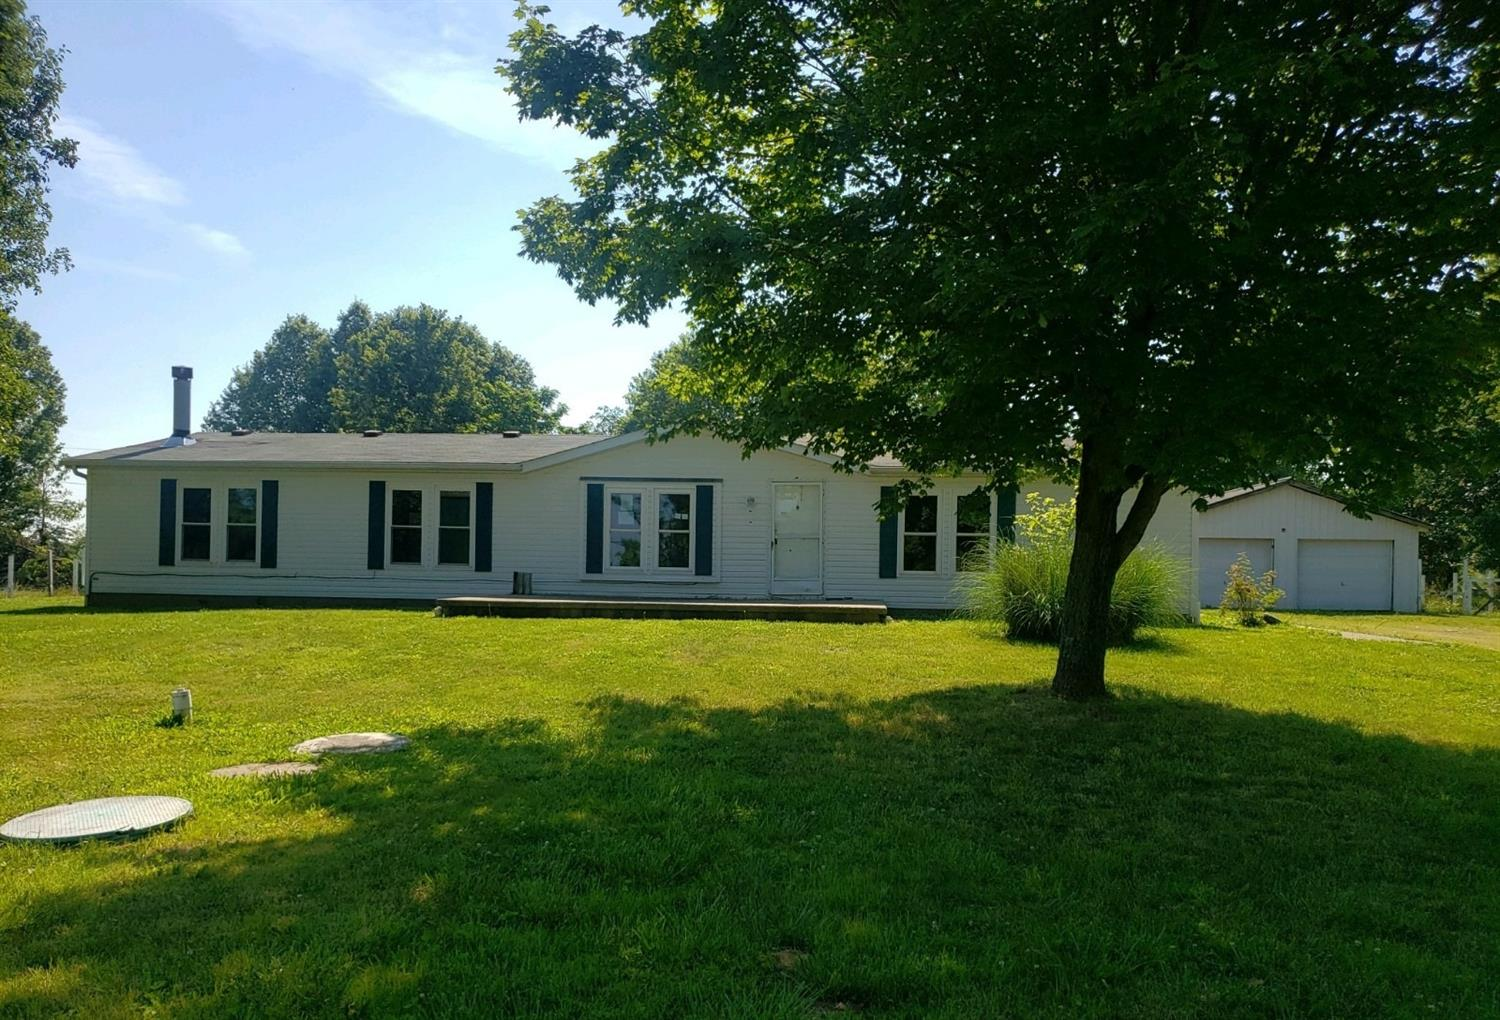 Property for sale at 1028 St Rt 222, Franklin Twp,  Ohio 45106